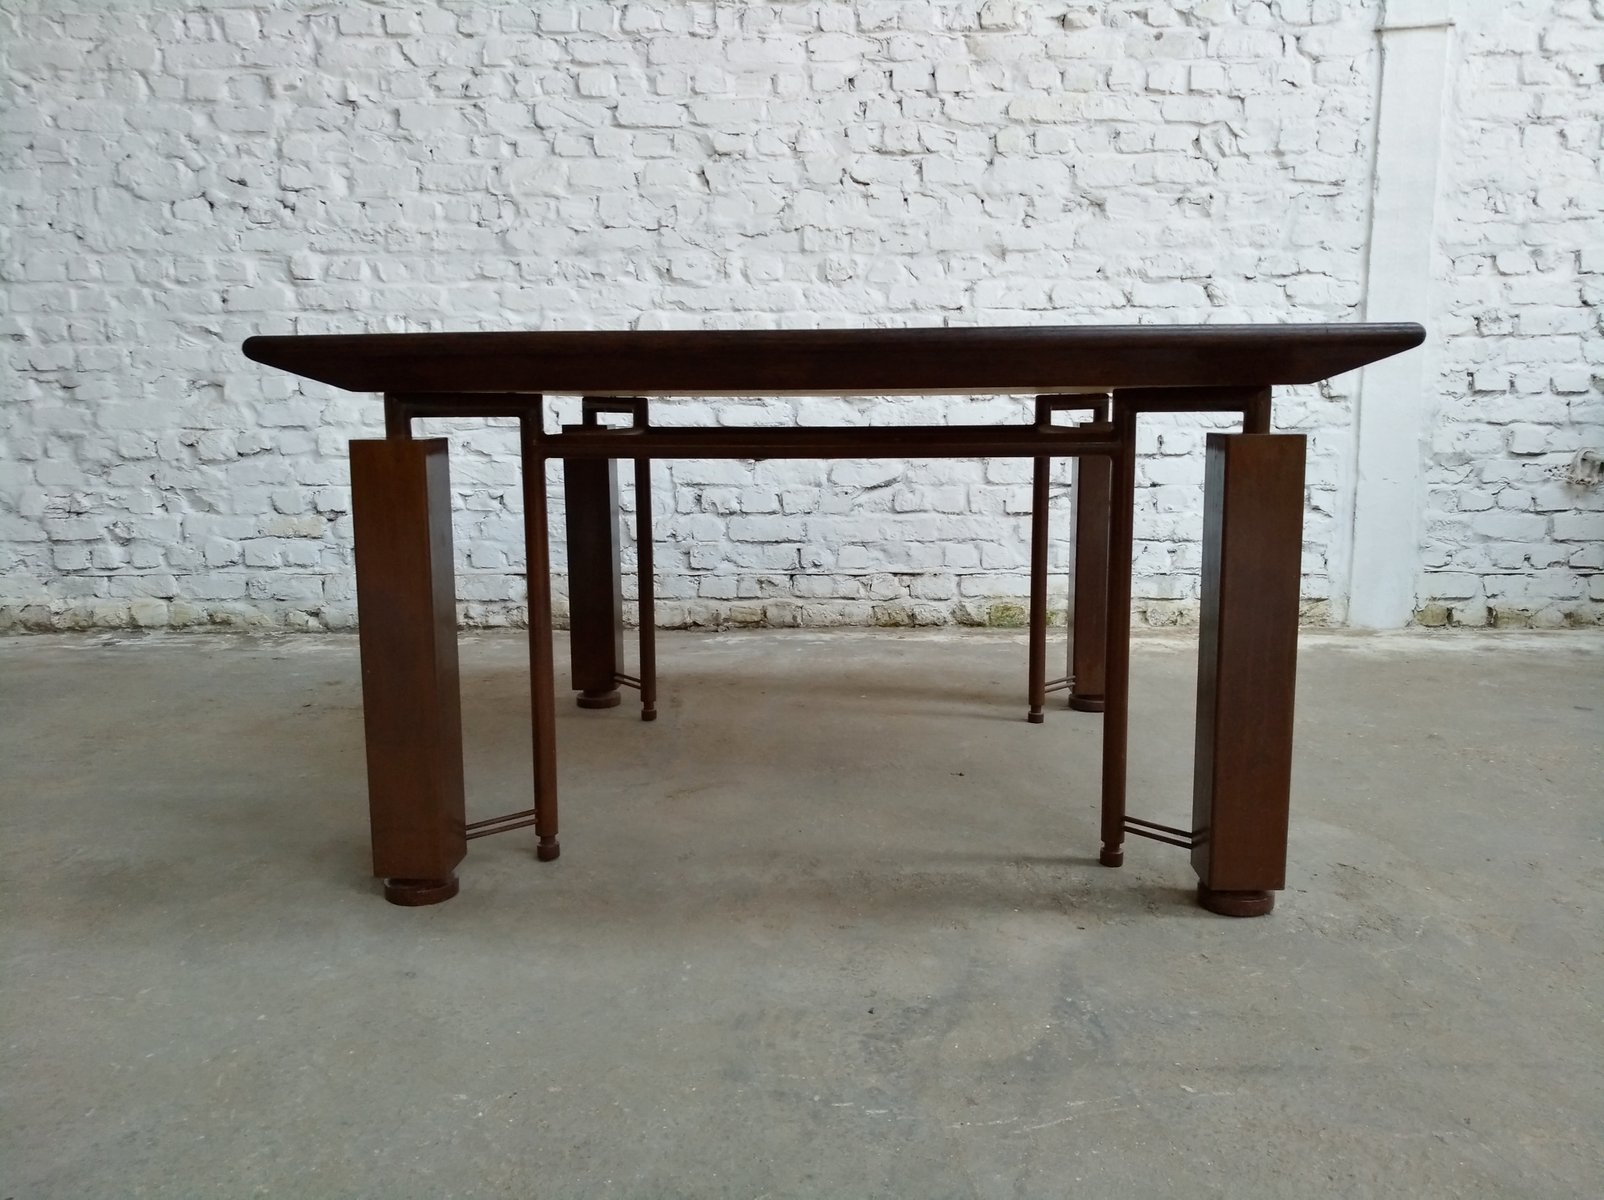 Grande table vintage industrielle postmoderne en wenge et acier rouill en vente sur pamono for Grande table industrielle